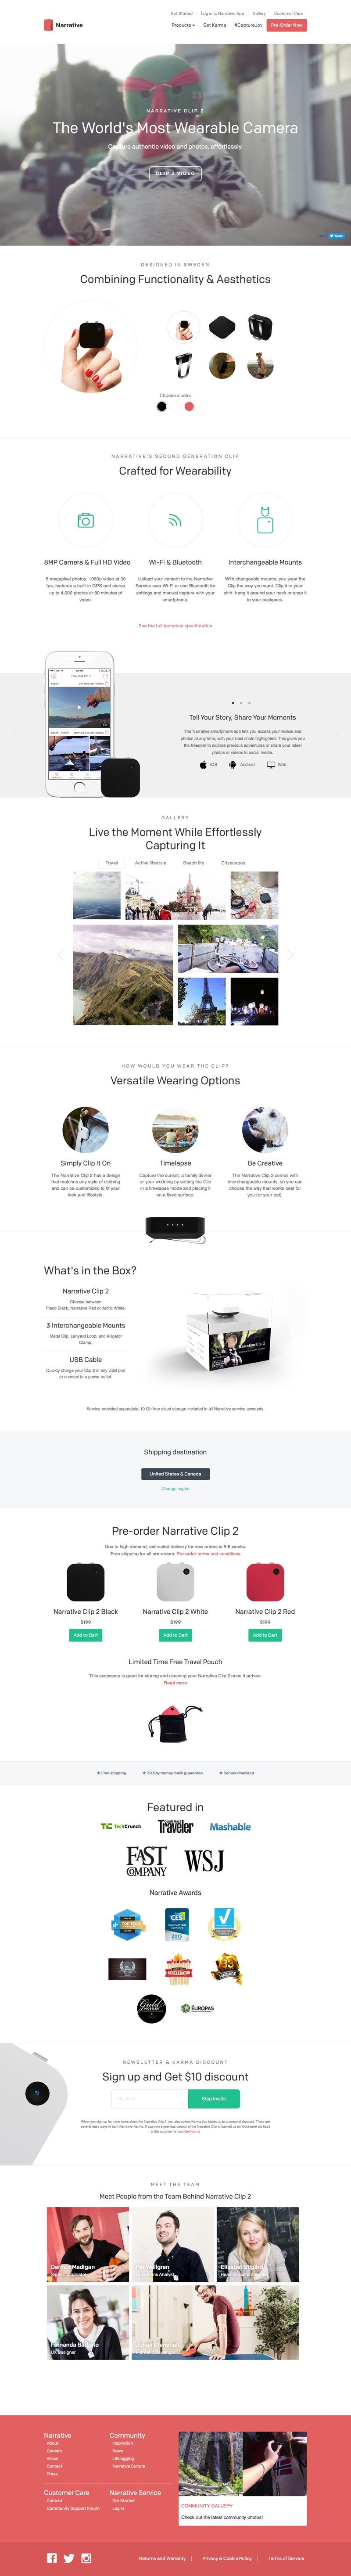 landing-page-narrative